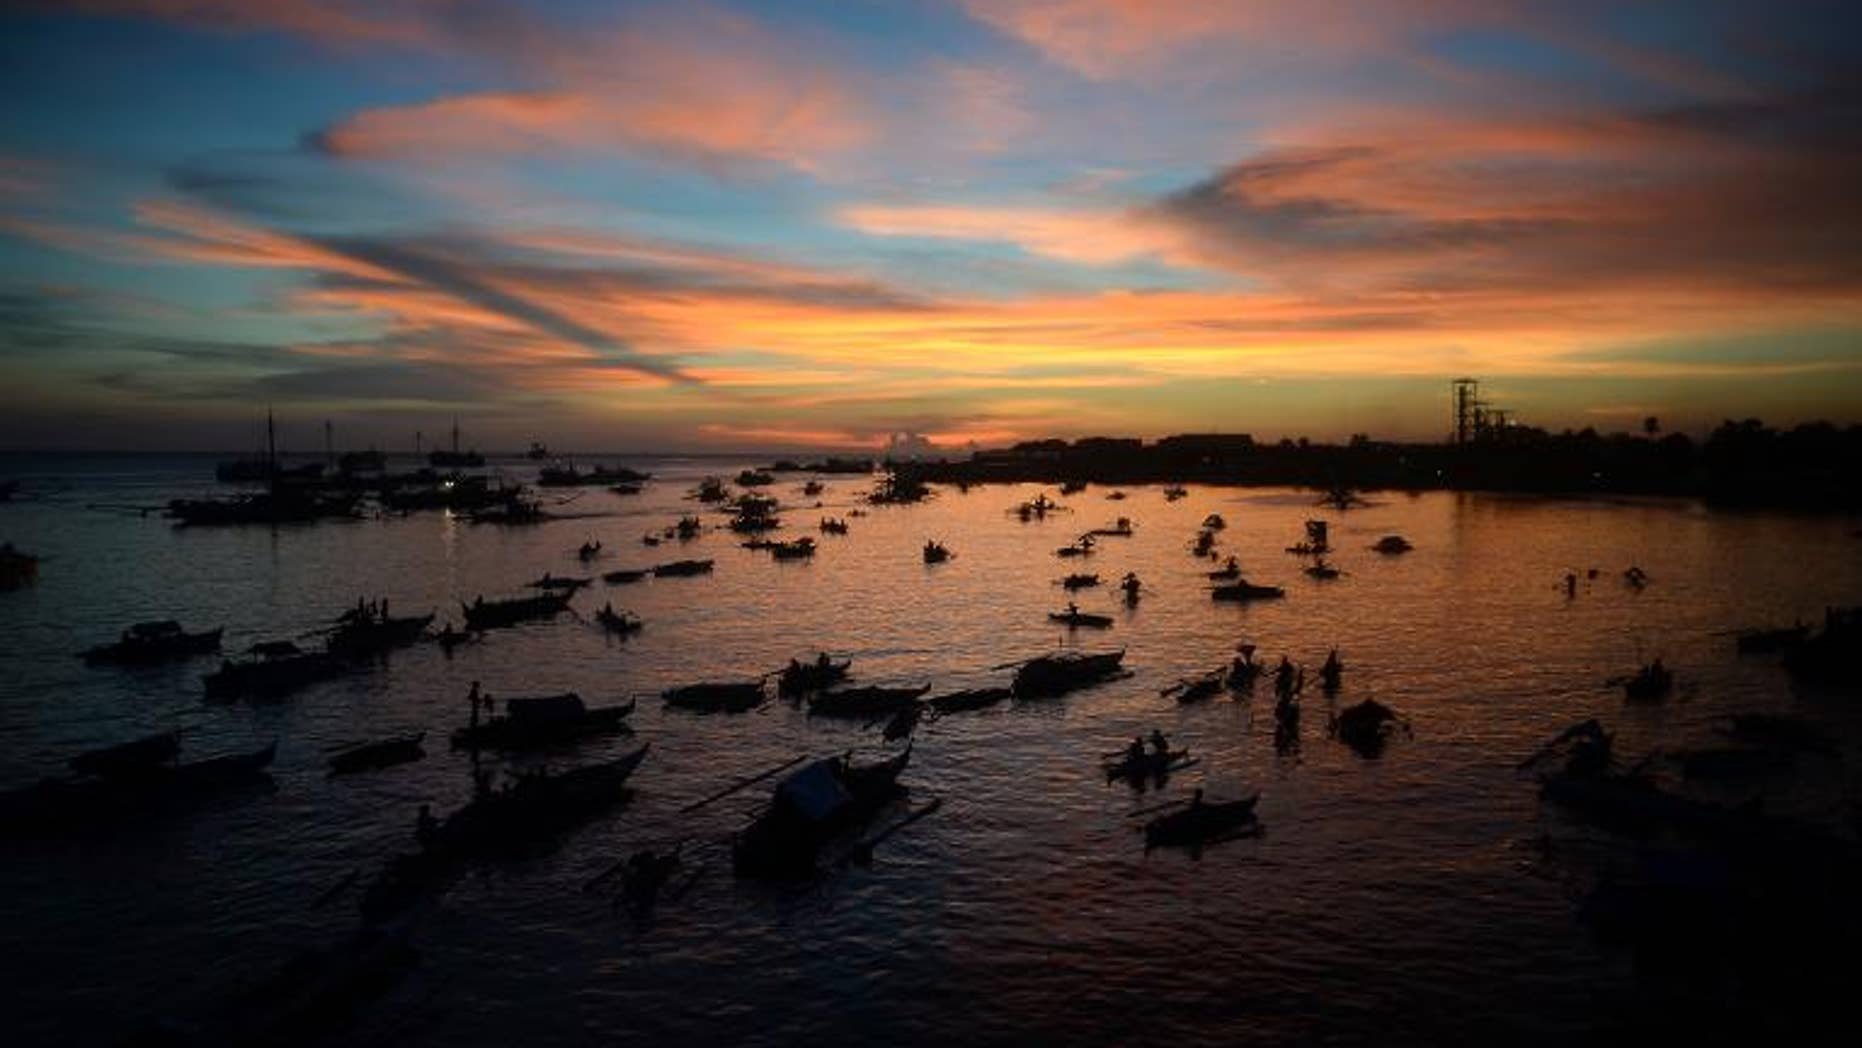 Evacuees affected by the stand-off between Philippine government forces and Muslim rebels sit anchored in their wooden boats used also as temporary living quarters at sunset near the sea wall in Zamboanga on September 14, 2013.